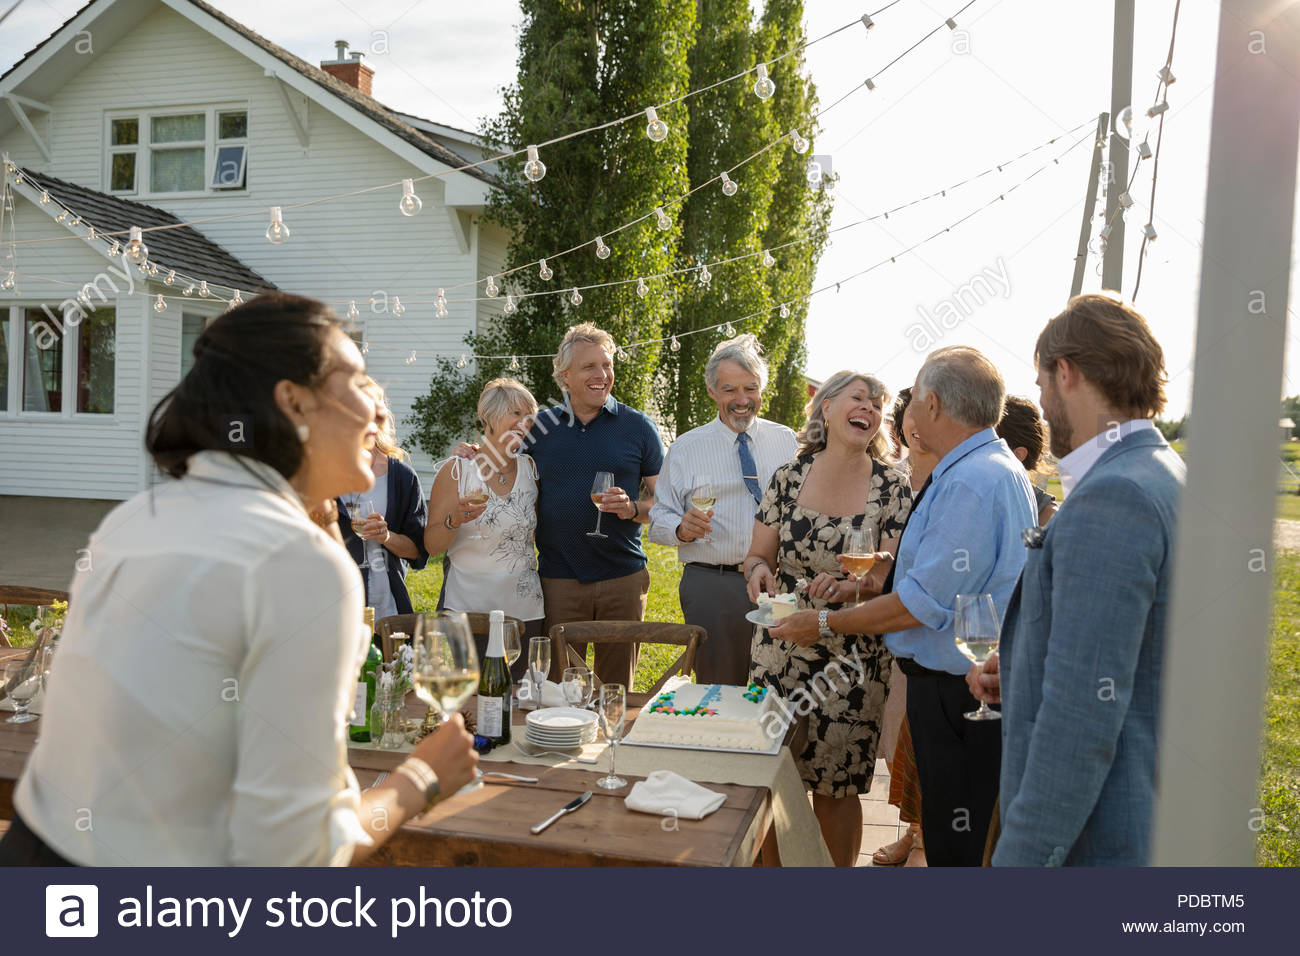 Friends celebrating, drinking wine and cutting cake at anniversary party at patio table - Stock Image